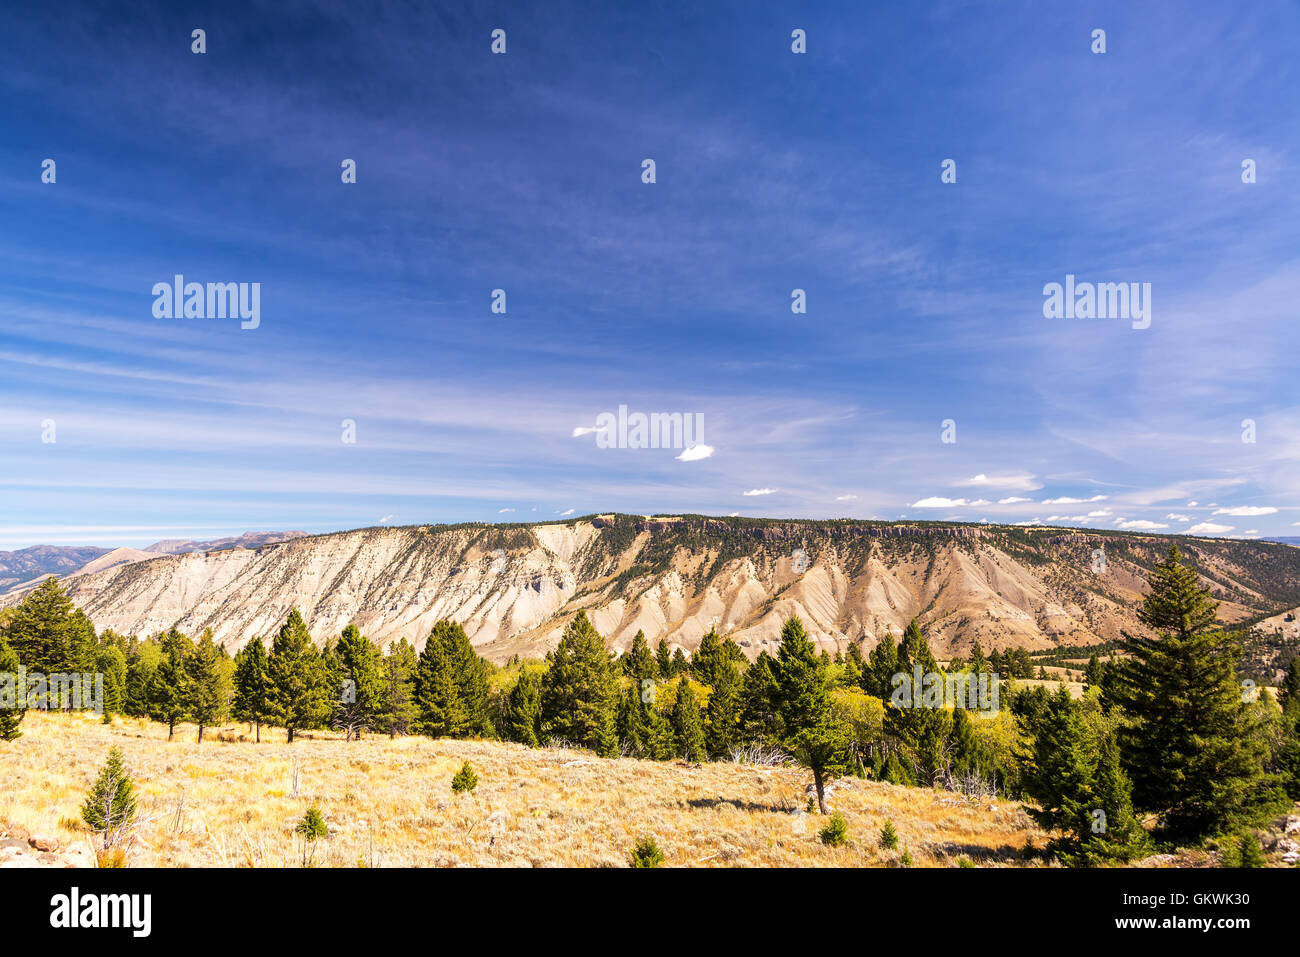 Beautiful landscape near Mammoth Hot Springs in Yellowstone National Park - Stock Image